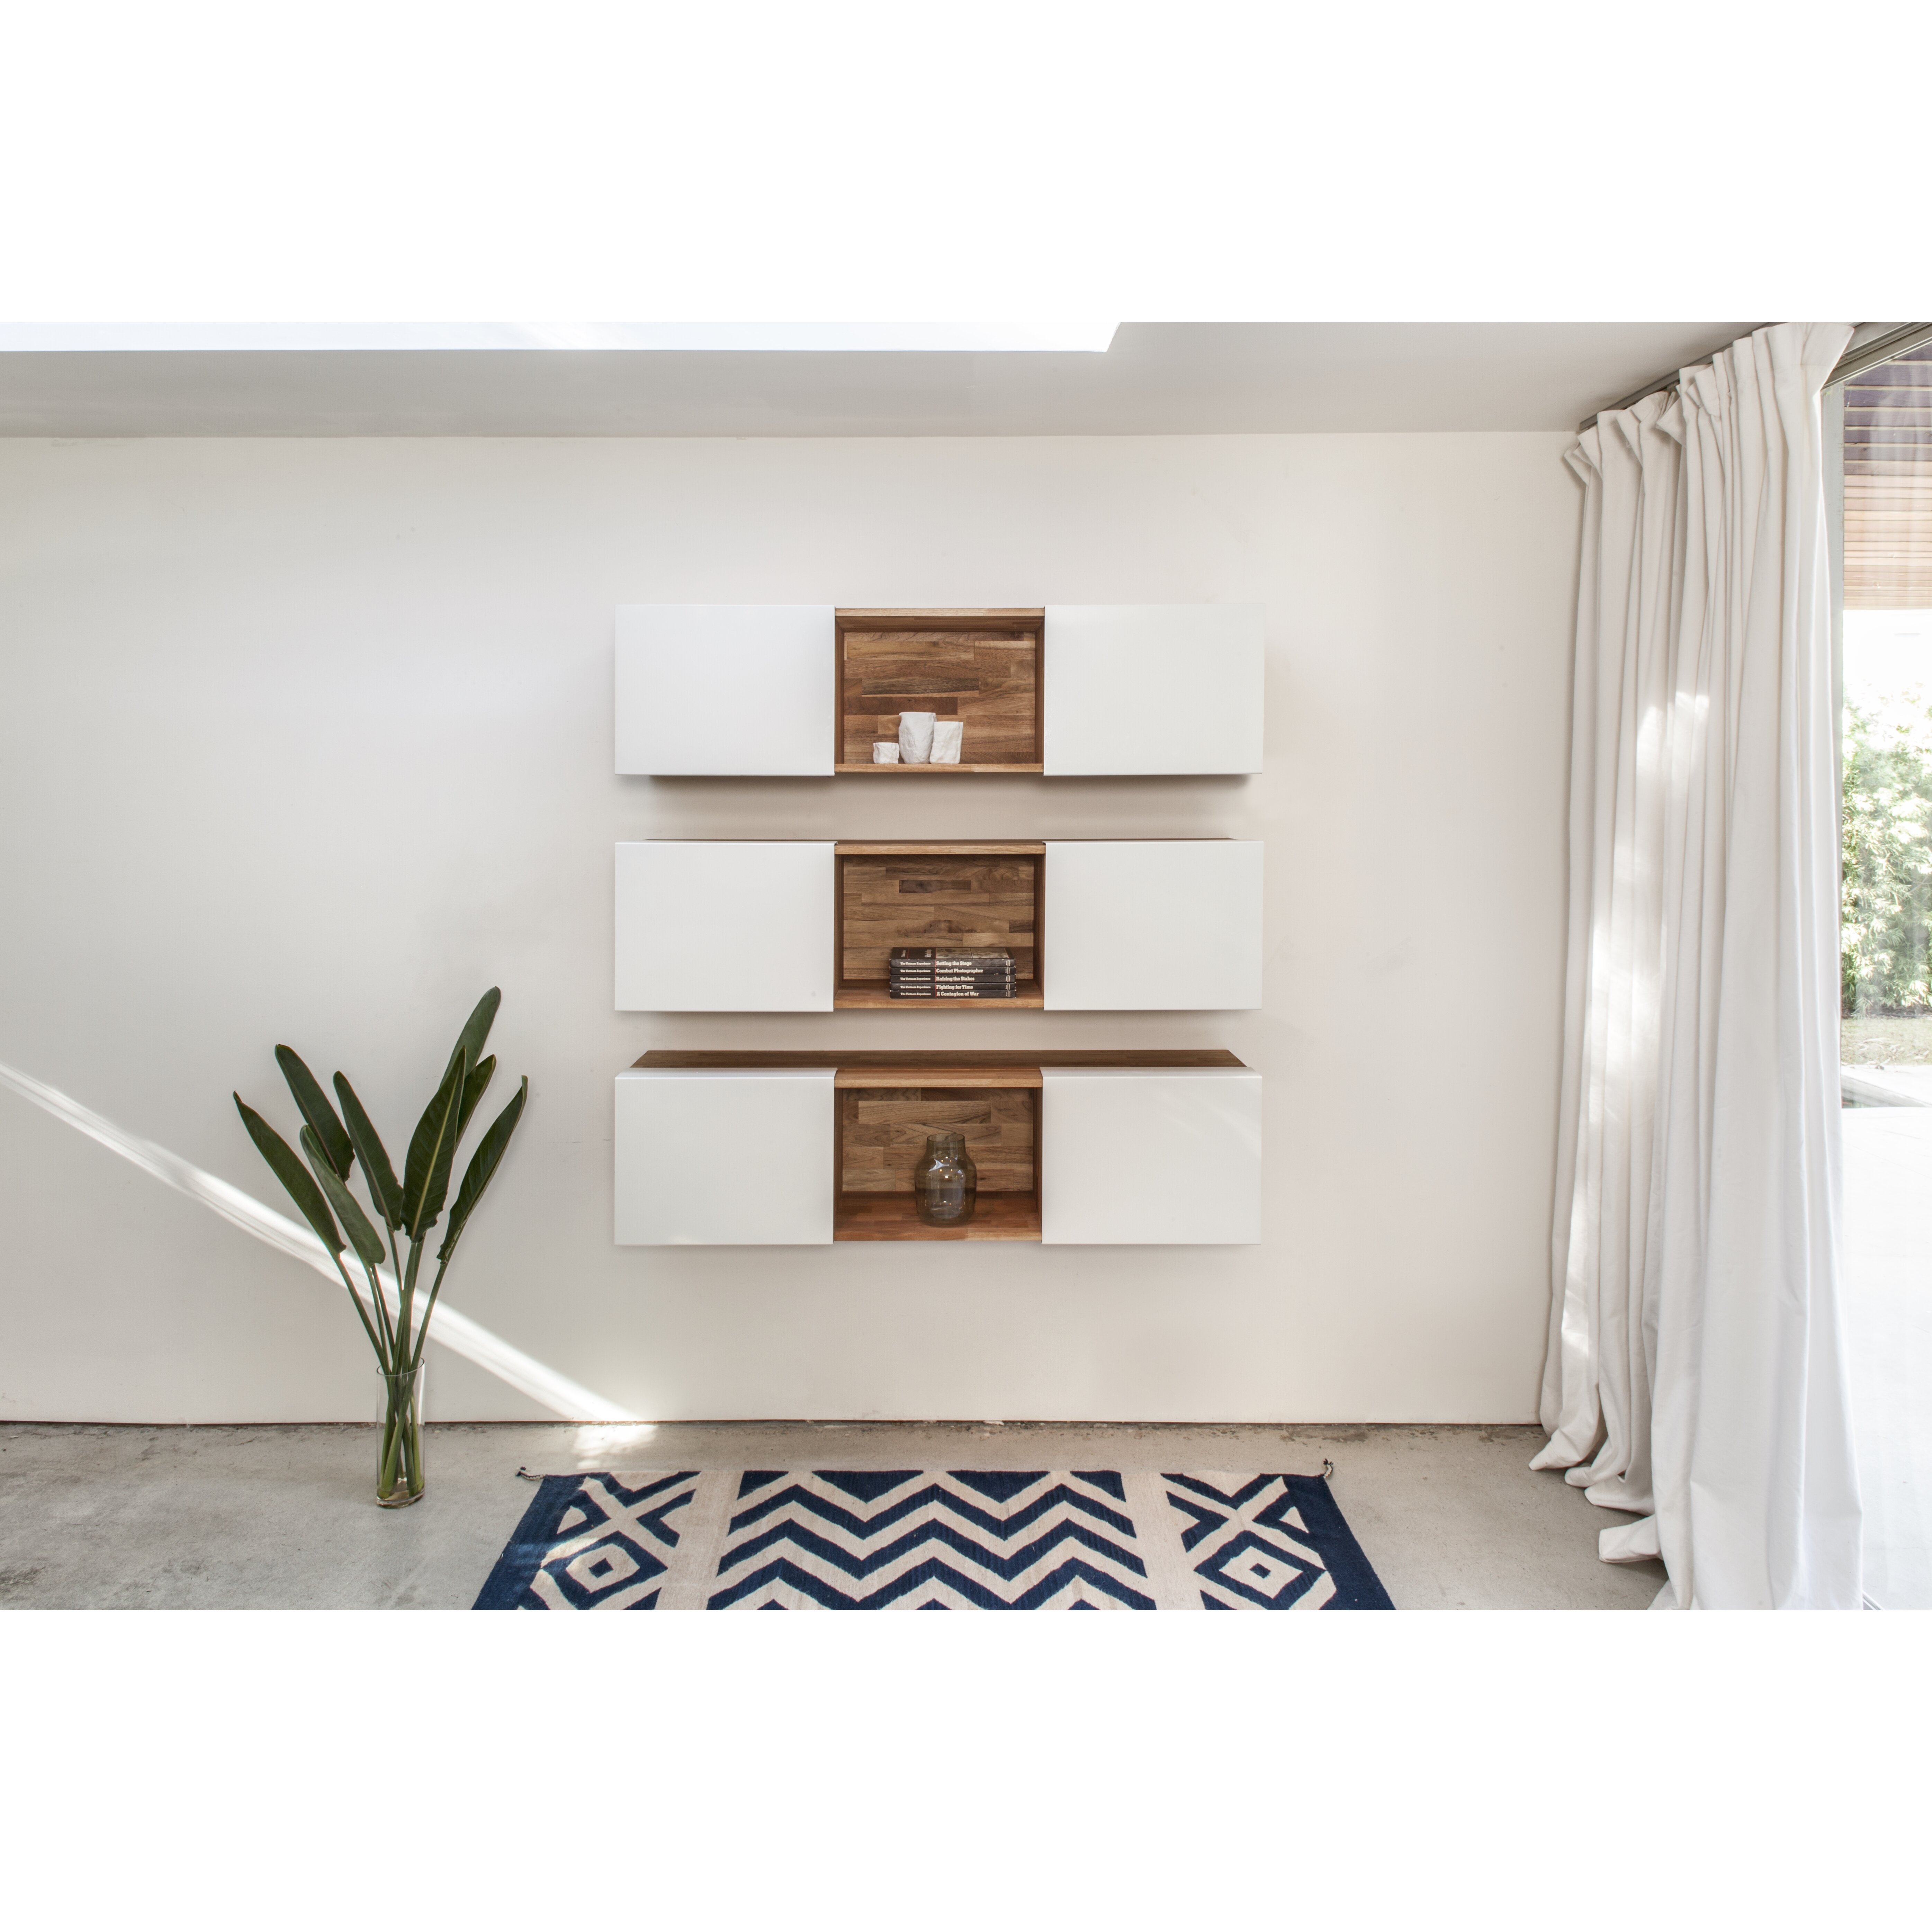 Mash Studios Lax Series 3x Wall Mounted Shelf Reviews